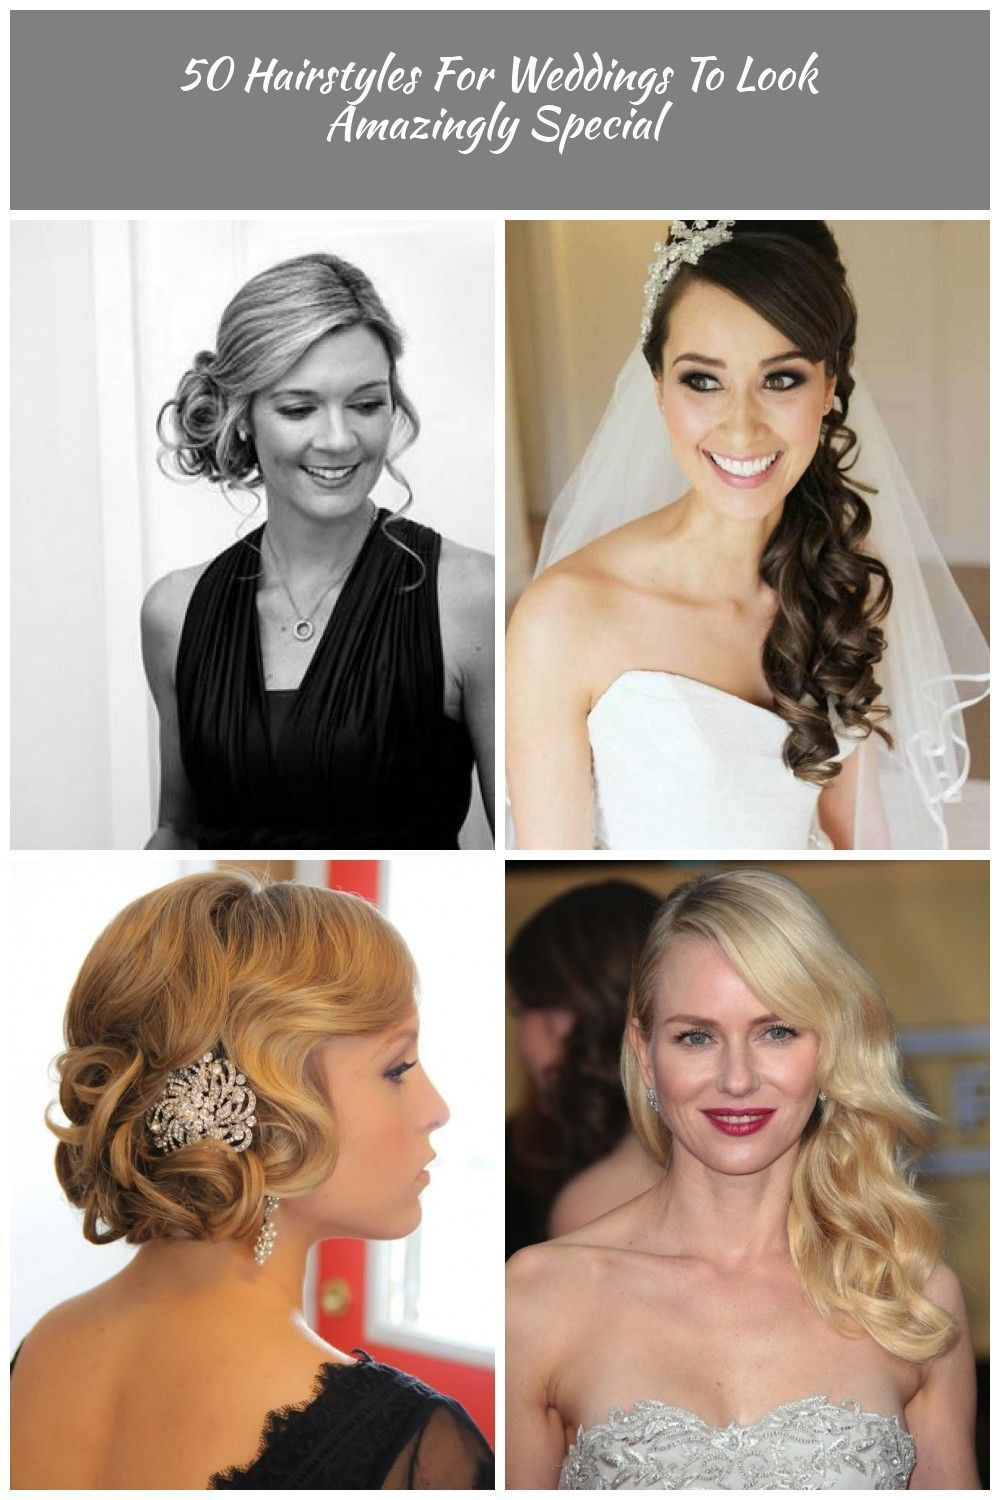 New Hairstyles Wedding Guest Curly Side Buns Ideas #wedding #hairstyles wedding hairstyles side New Hairstyles Wedding Guest Curly Side Buns Ideas #we... - #curly #guest #hairstyles #Ideas #Wedding #weddingguesthairstyles